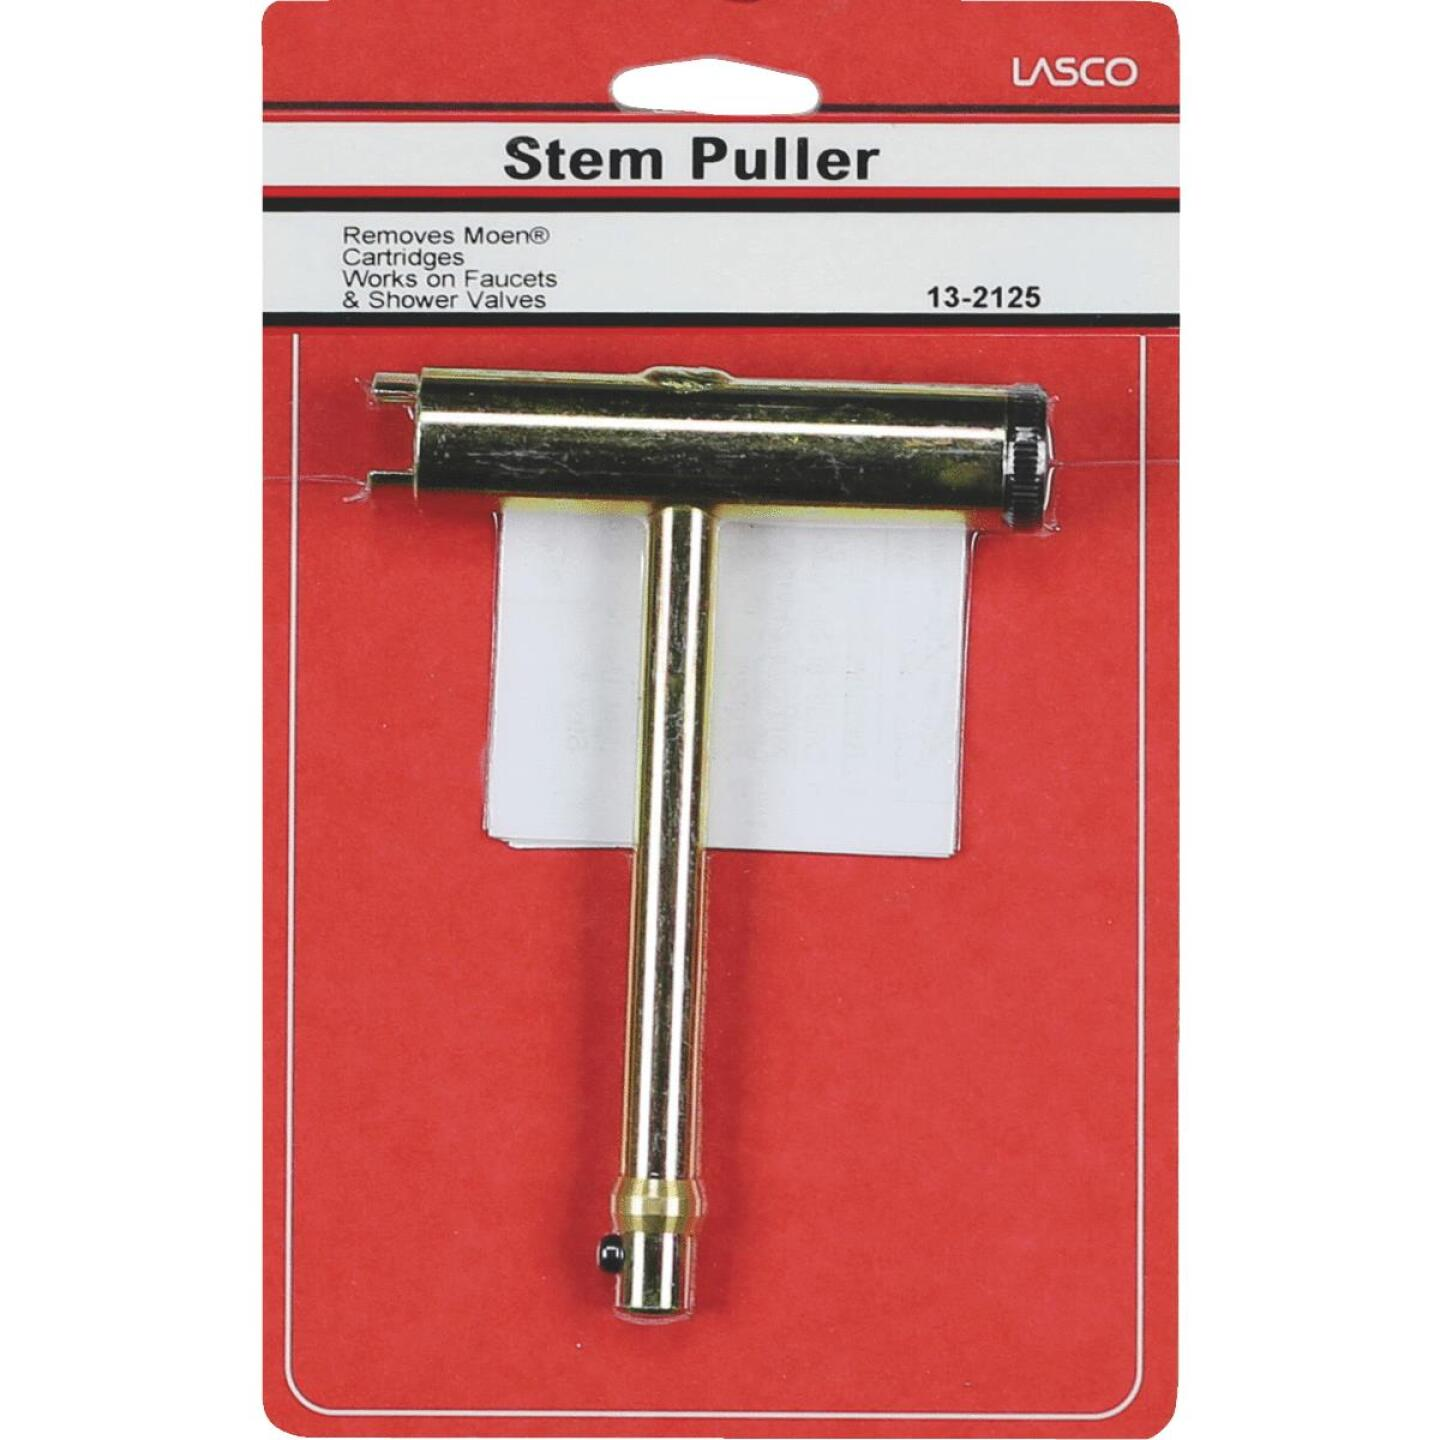 Lasco Cartridge Puller for Moen Brass and Plastic Single Handle Cartridges Image 2